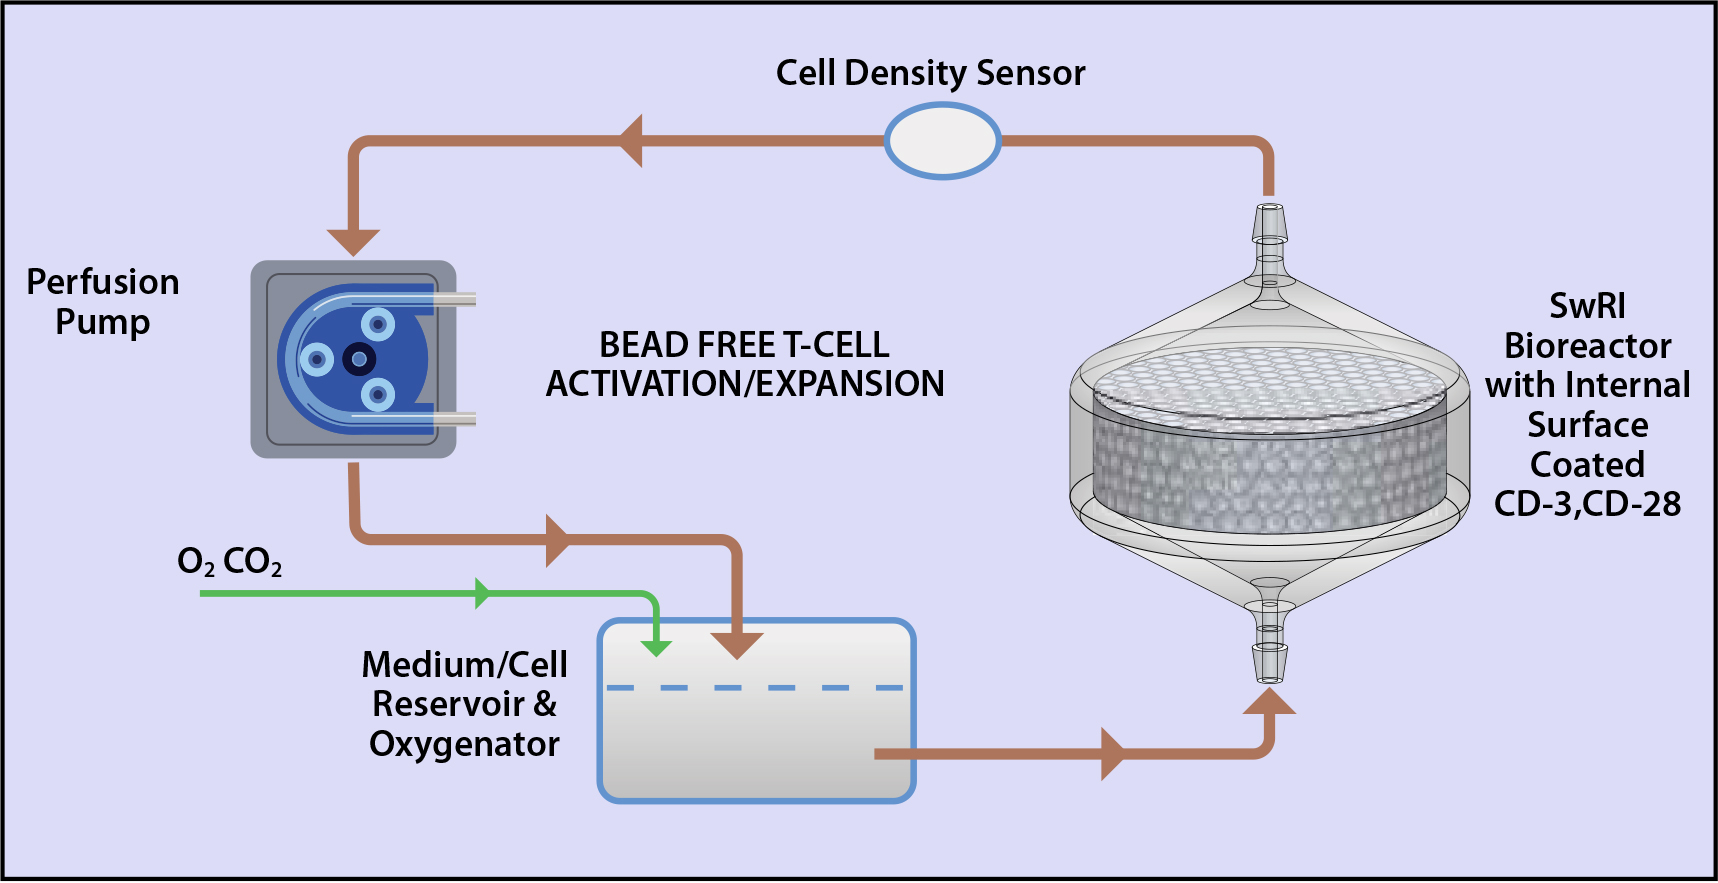 SwRI's bead-free perfusion-based system flow diagram